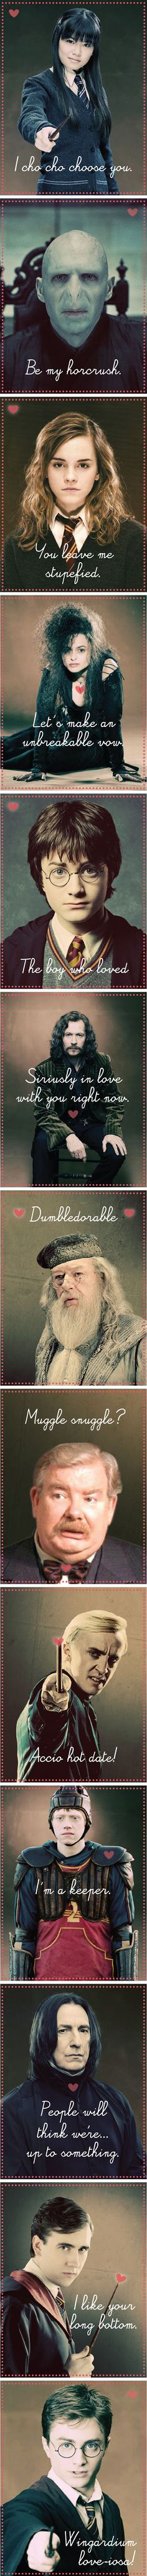 A Very Potter Valentine.... Some of these are hilarious.